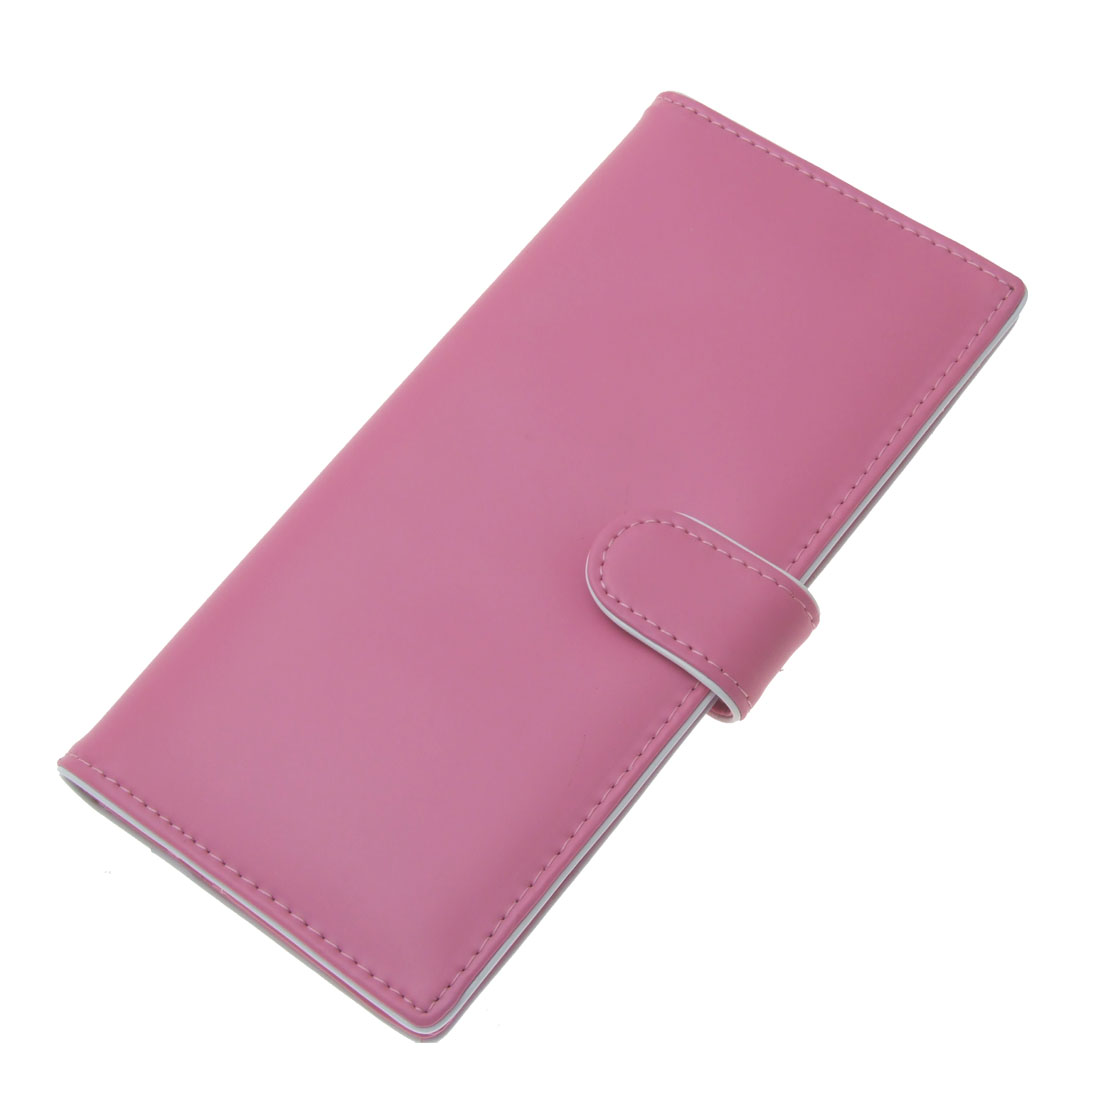 7.2 x 3.5 Inch Faux Leather Photo Window Card Slot Lady Ultra Pink Wallet Purse